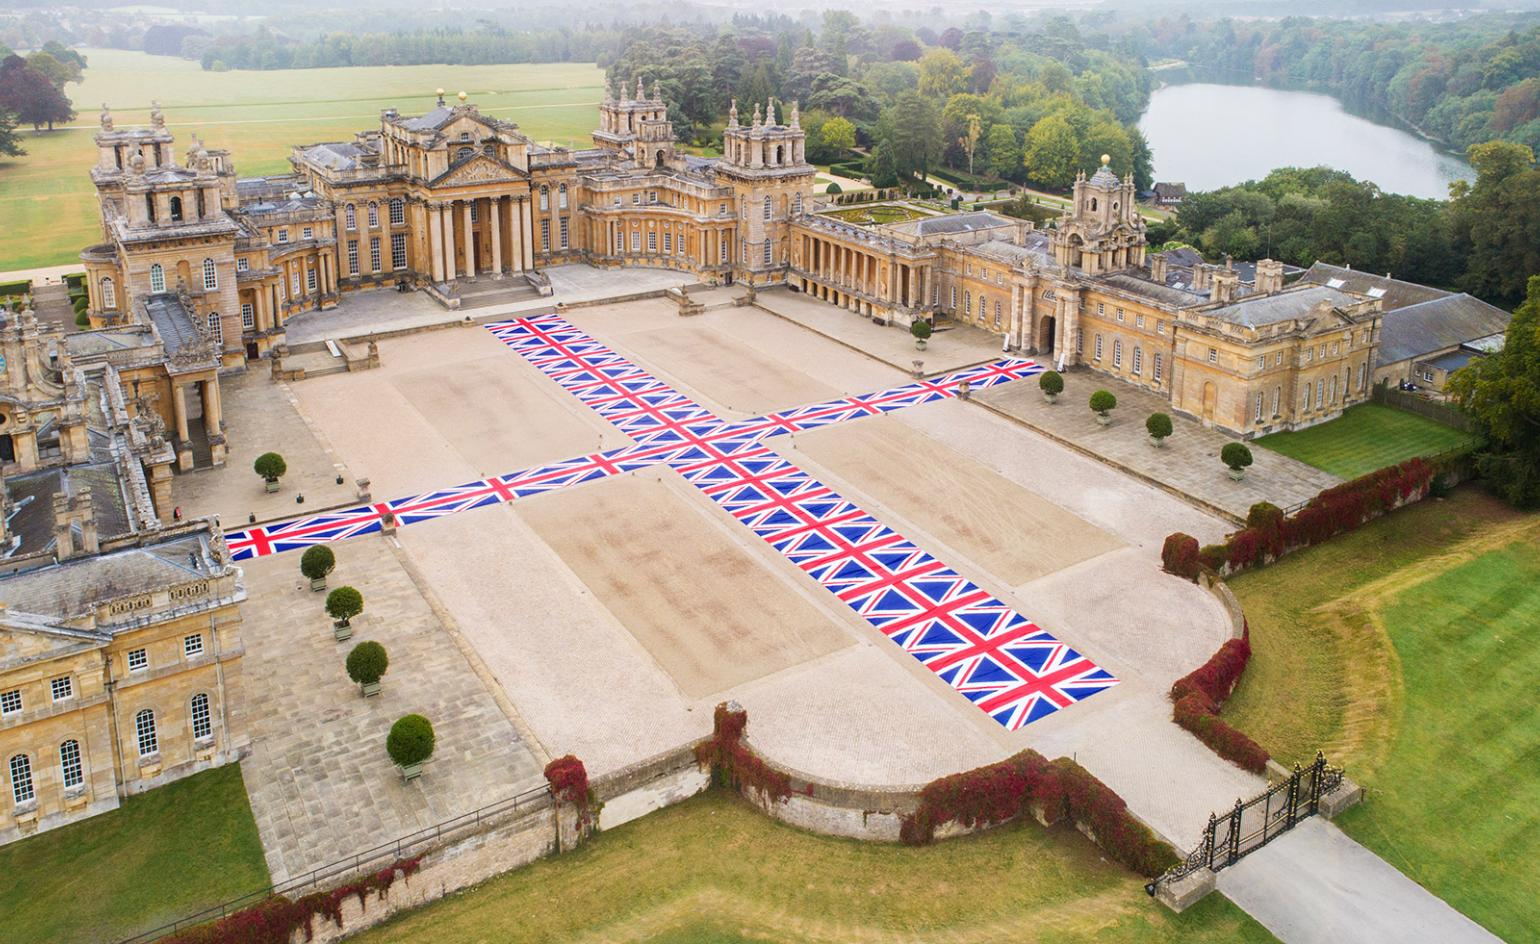 After a brazen heist, the joke's on trickster Maurizio Cattelan at Blenheim Palace